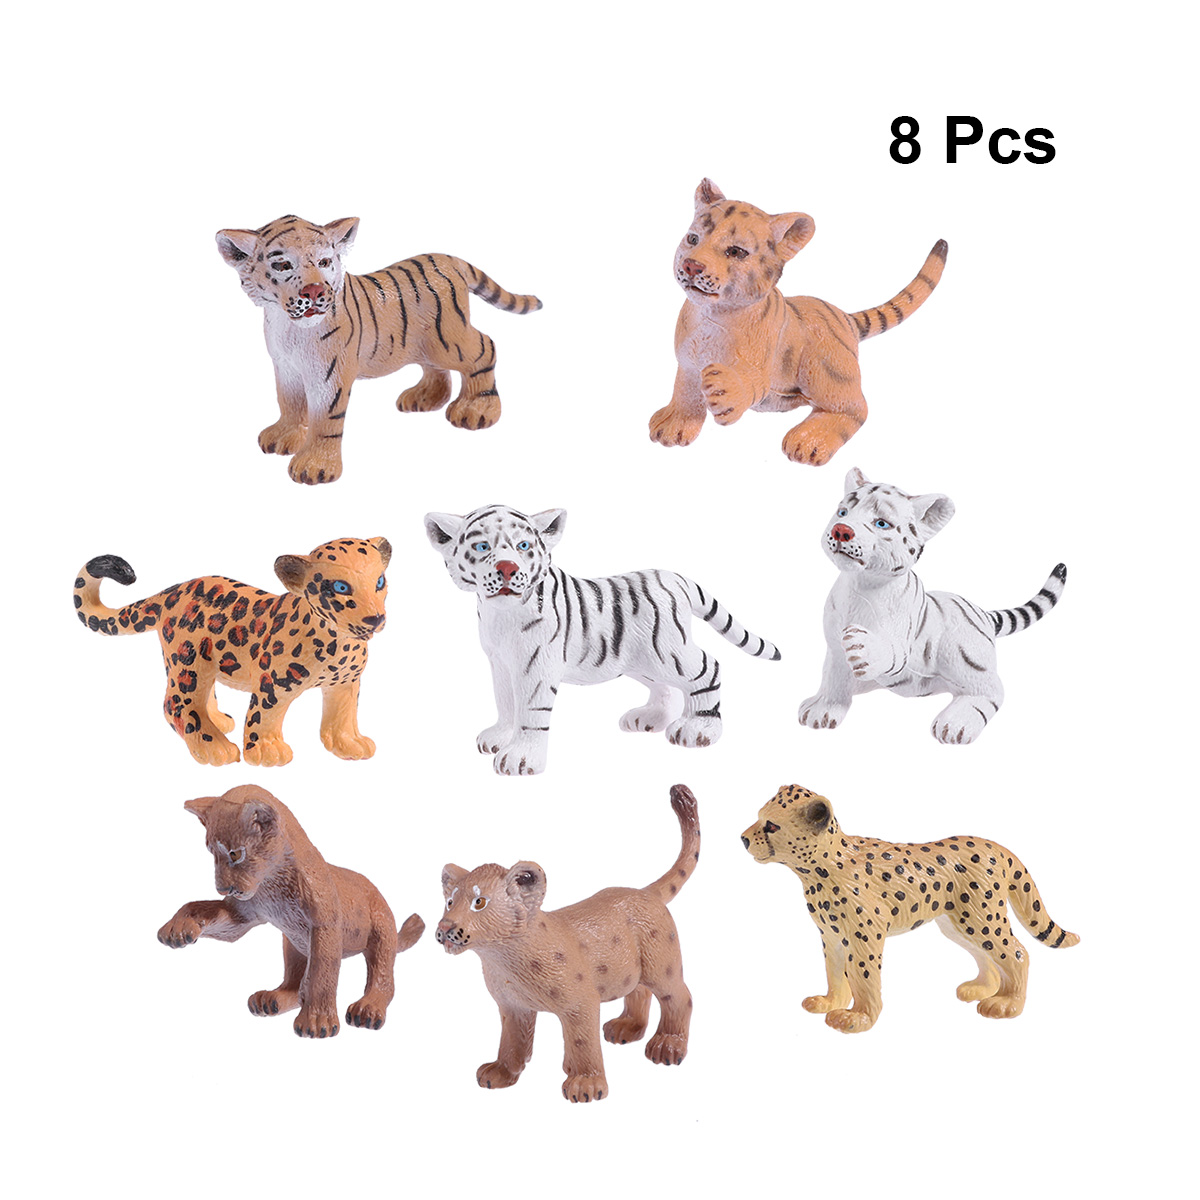 Toy Leopard-Figure Simulation-Animal Office Plastic Cute for Home 8pcs Tiger-African